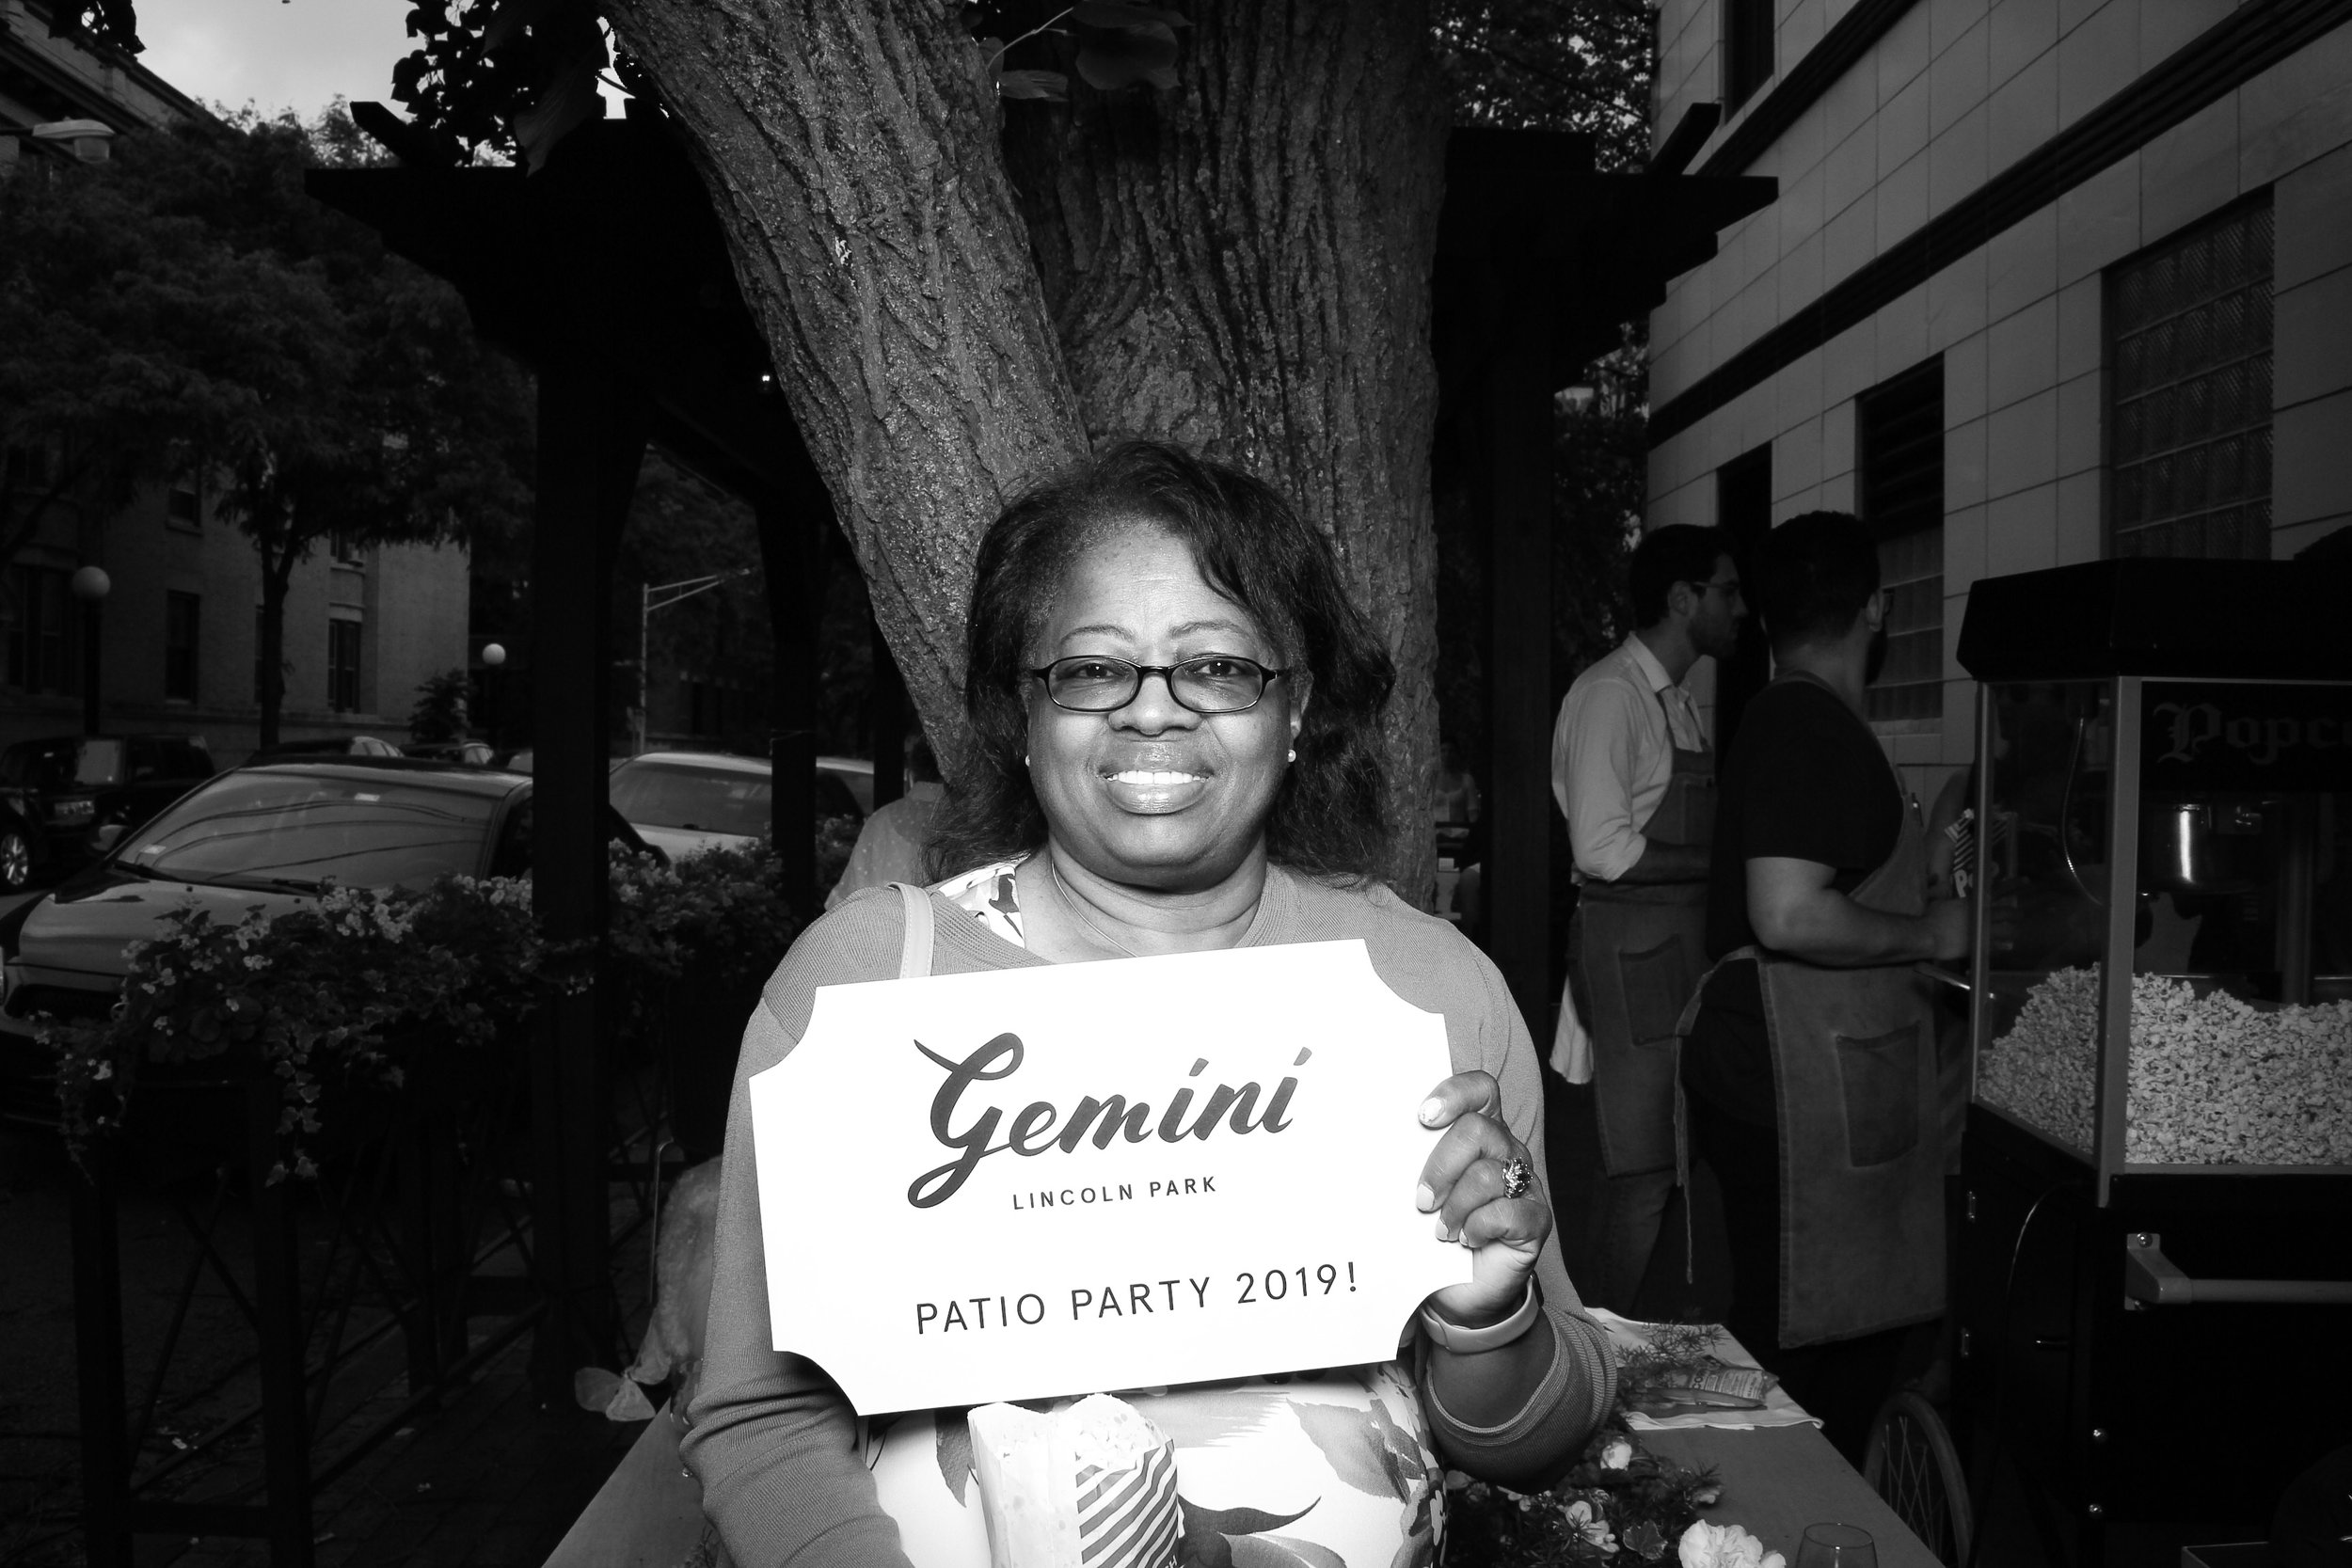 Chicago_Vintage_Wedding_Photobooth_Gemini_Lincoln_Park_11.jpg